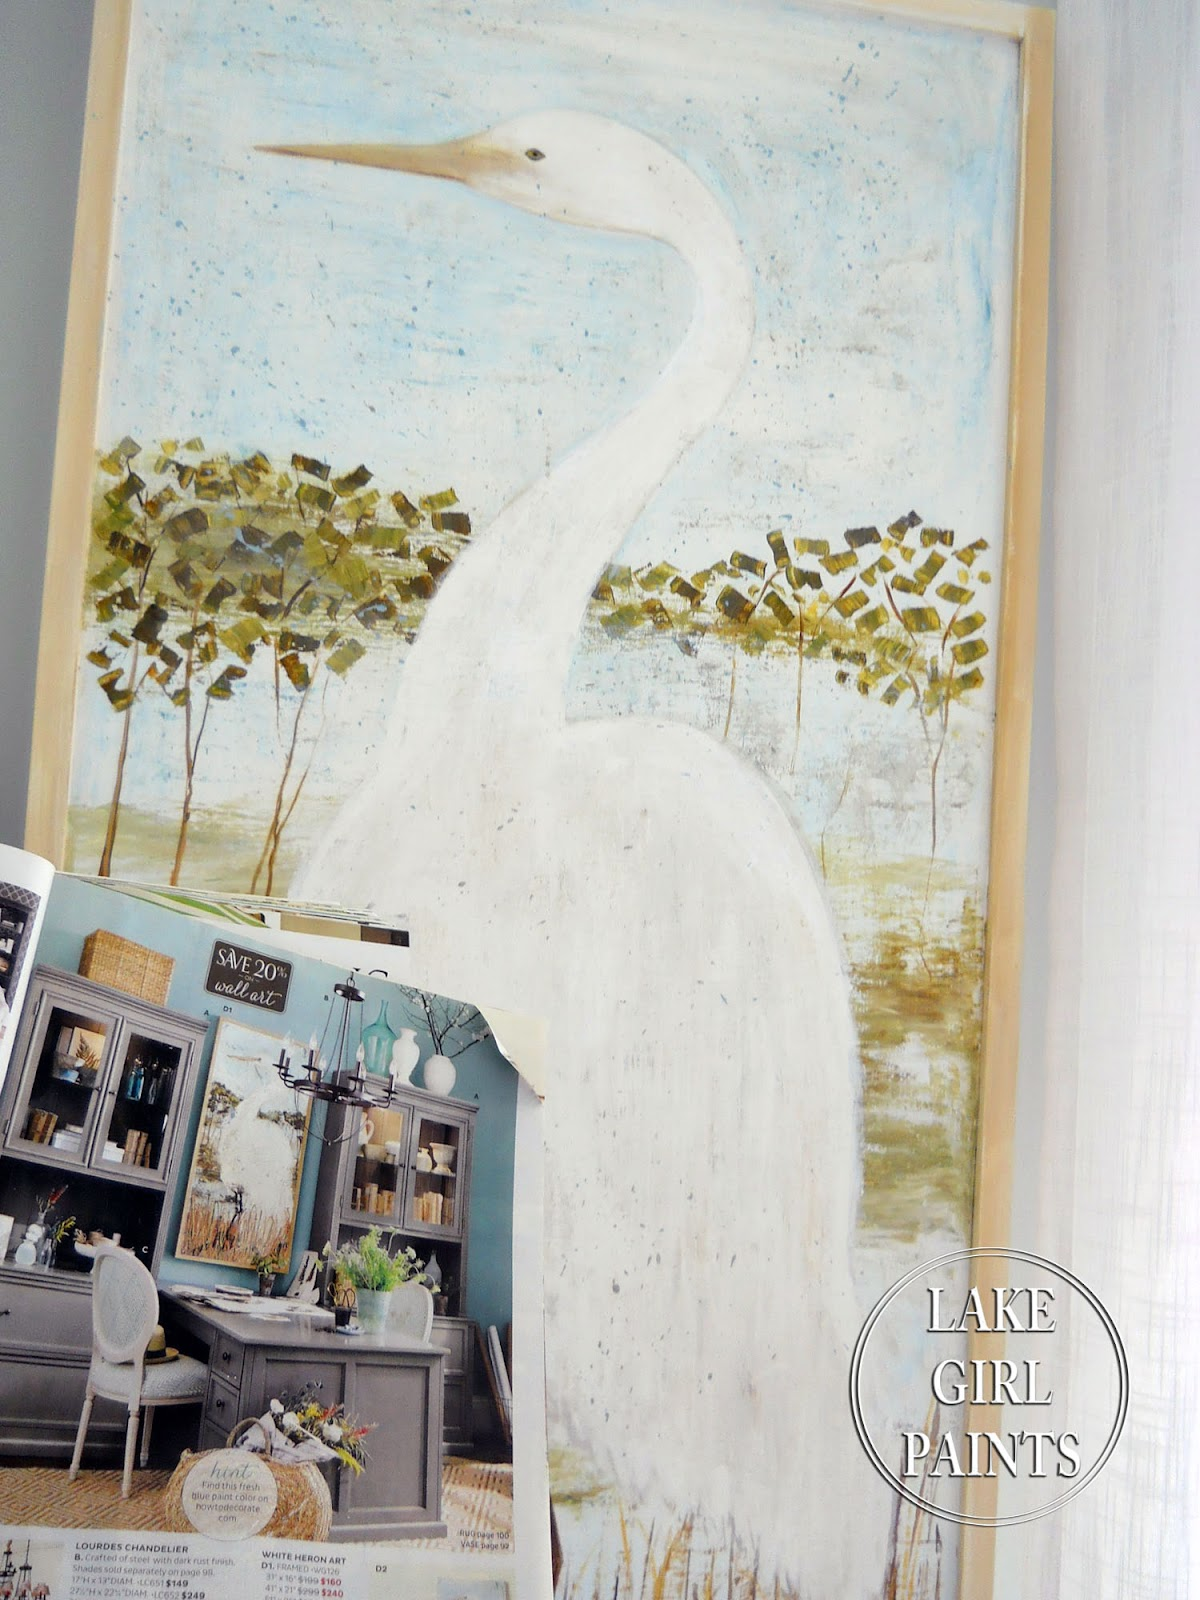 lake girl paints painting heron art i want to share how you can get the overall